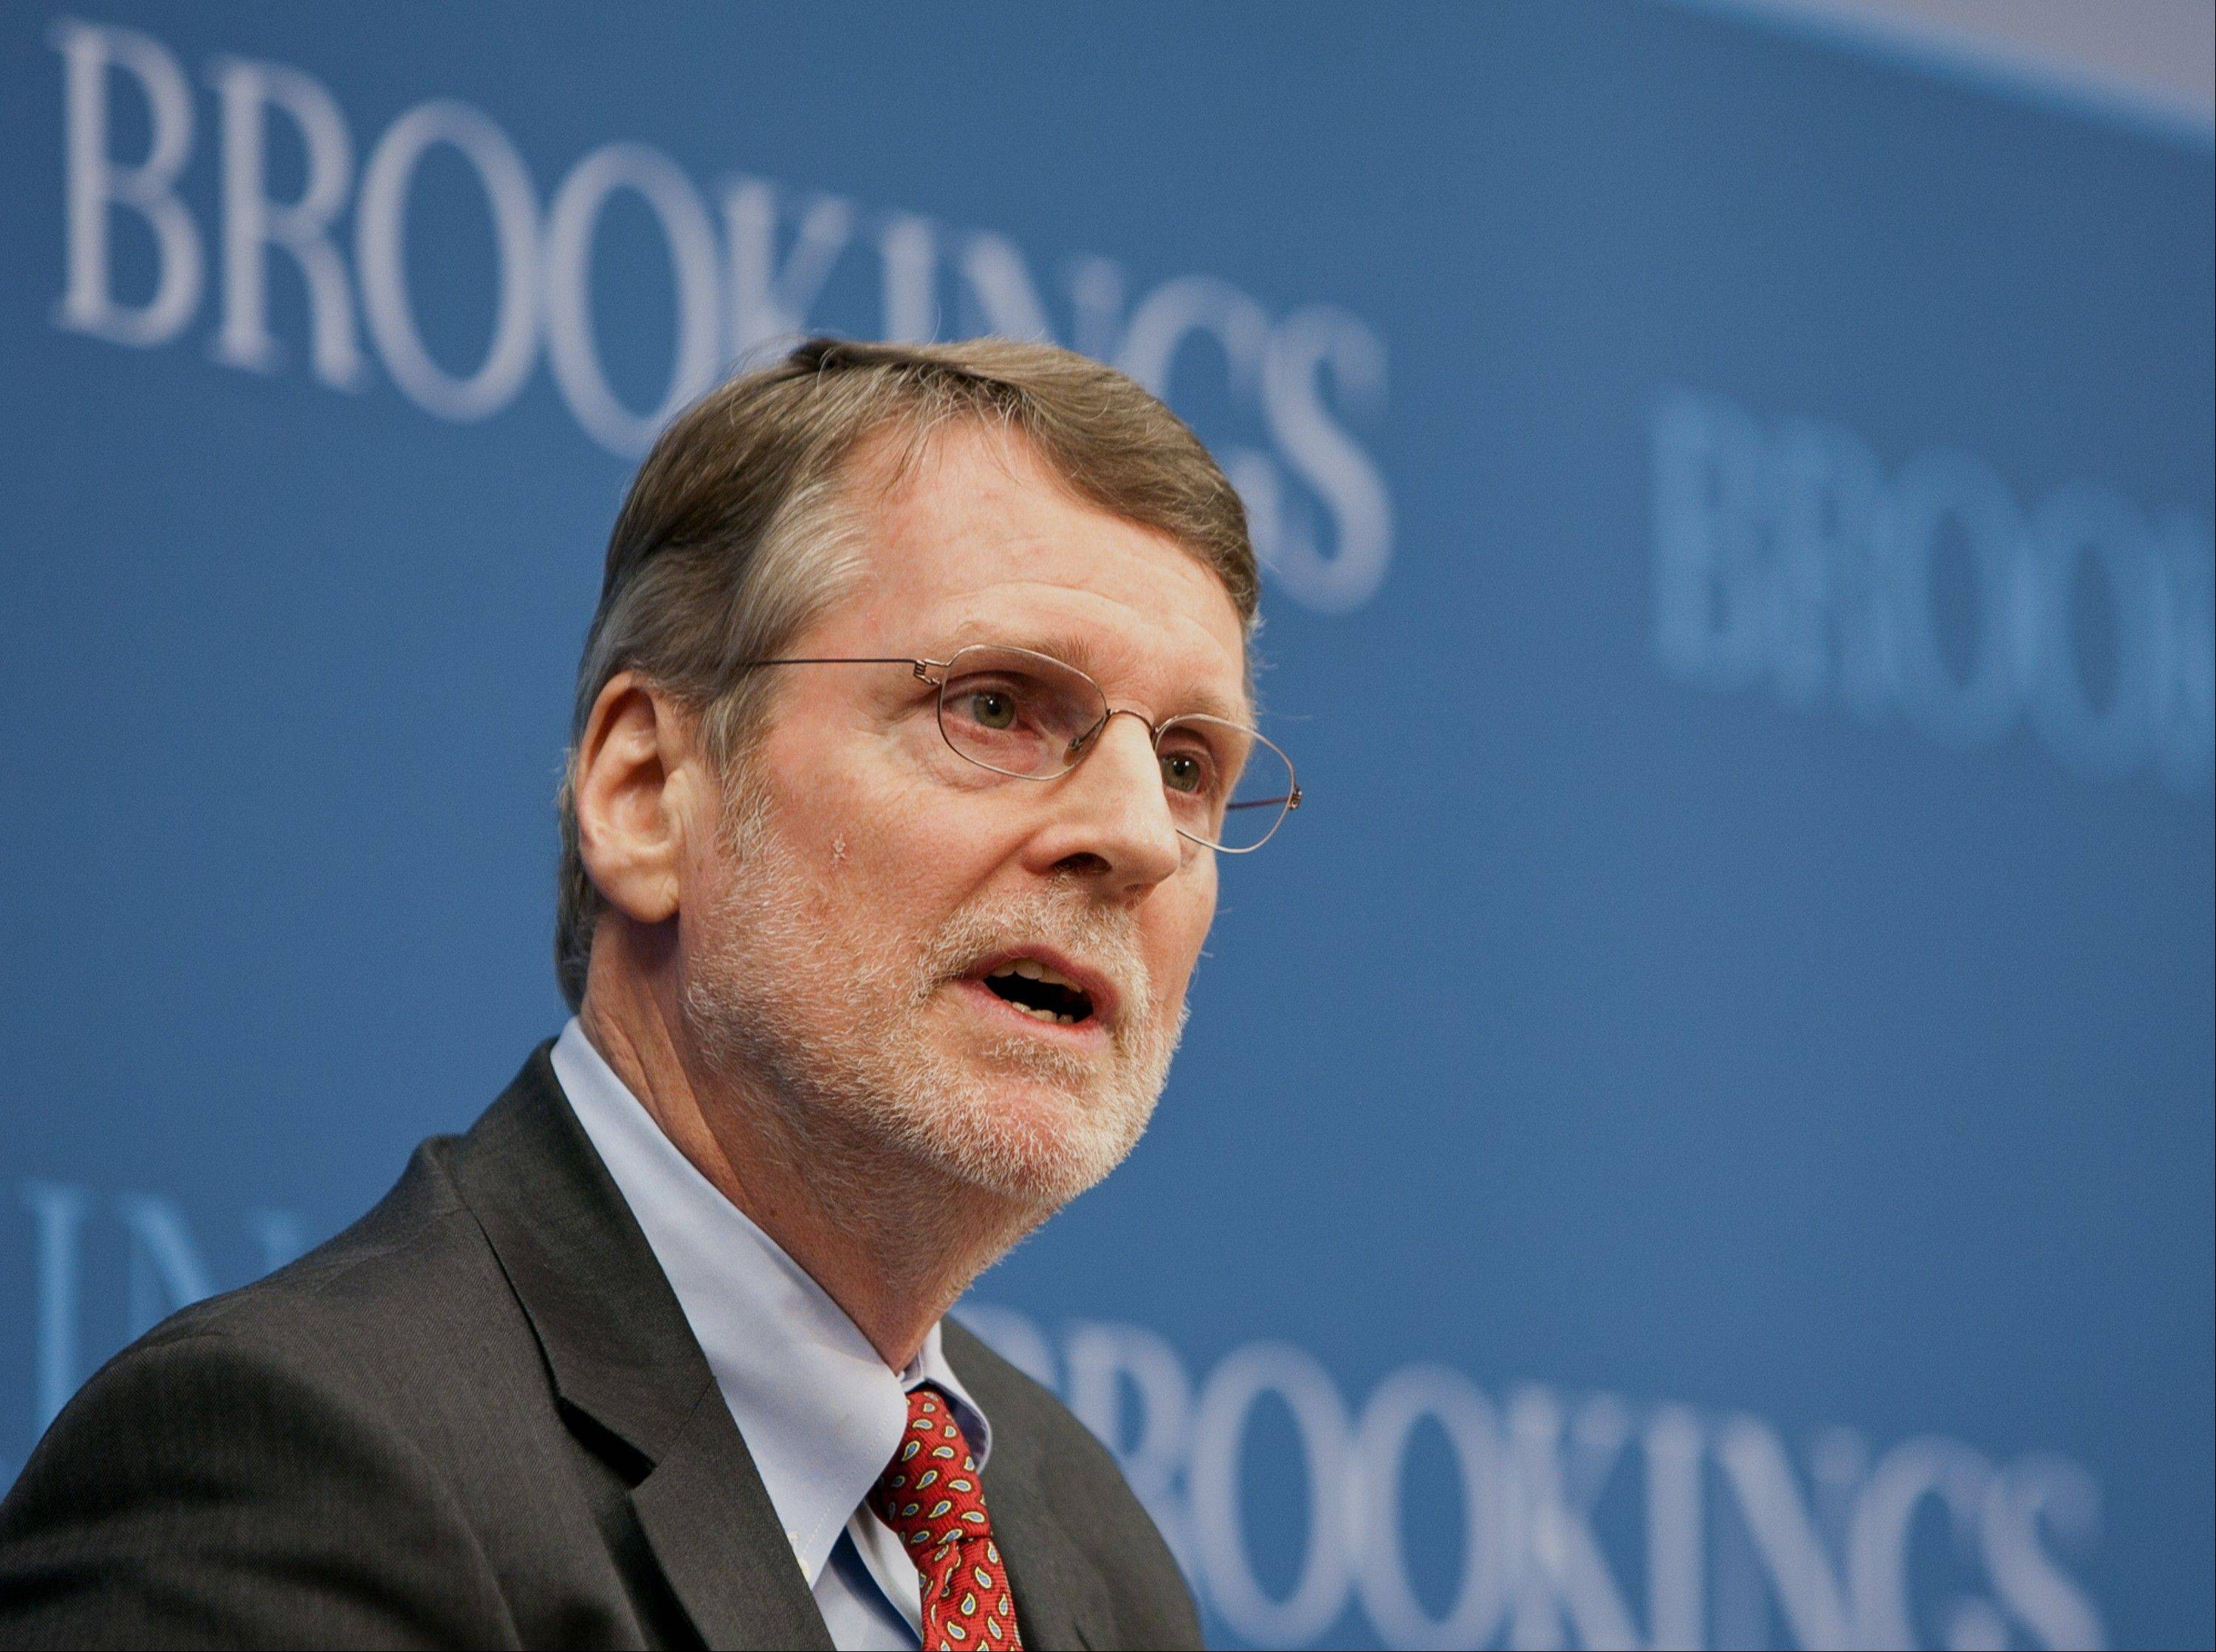 This handout photo provided by the Brookings Institution, taken Jan. 13, shows Gary Burtless of the Brookings Institution speaking in Washington. New research shows Obama's health care law will significantly boost the economic fortunes of people in the bottom fifth of the income ladder.